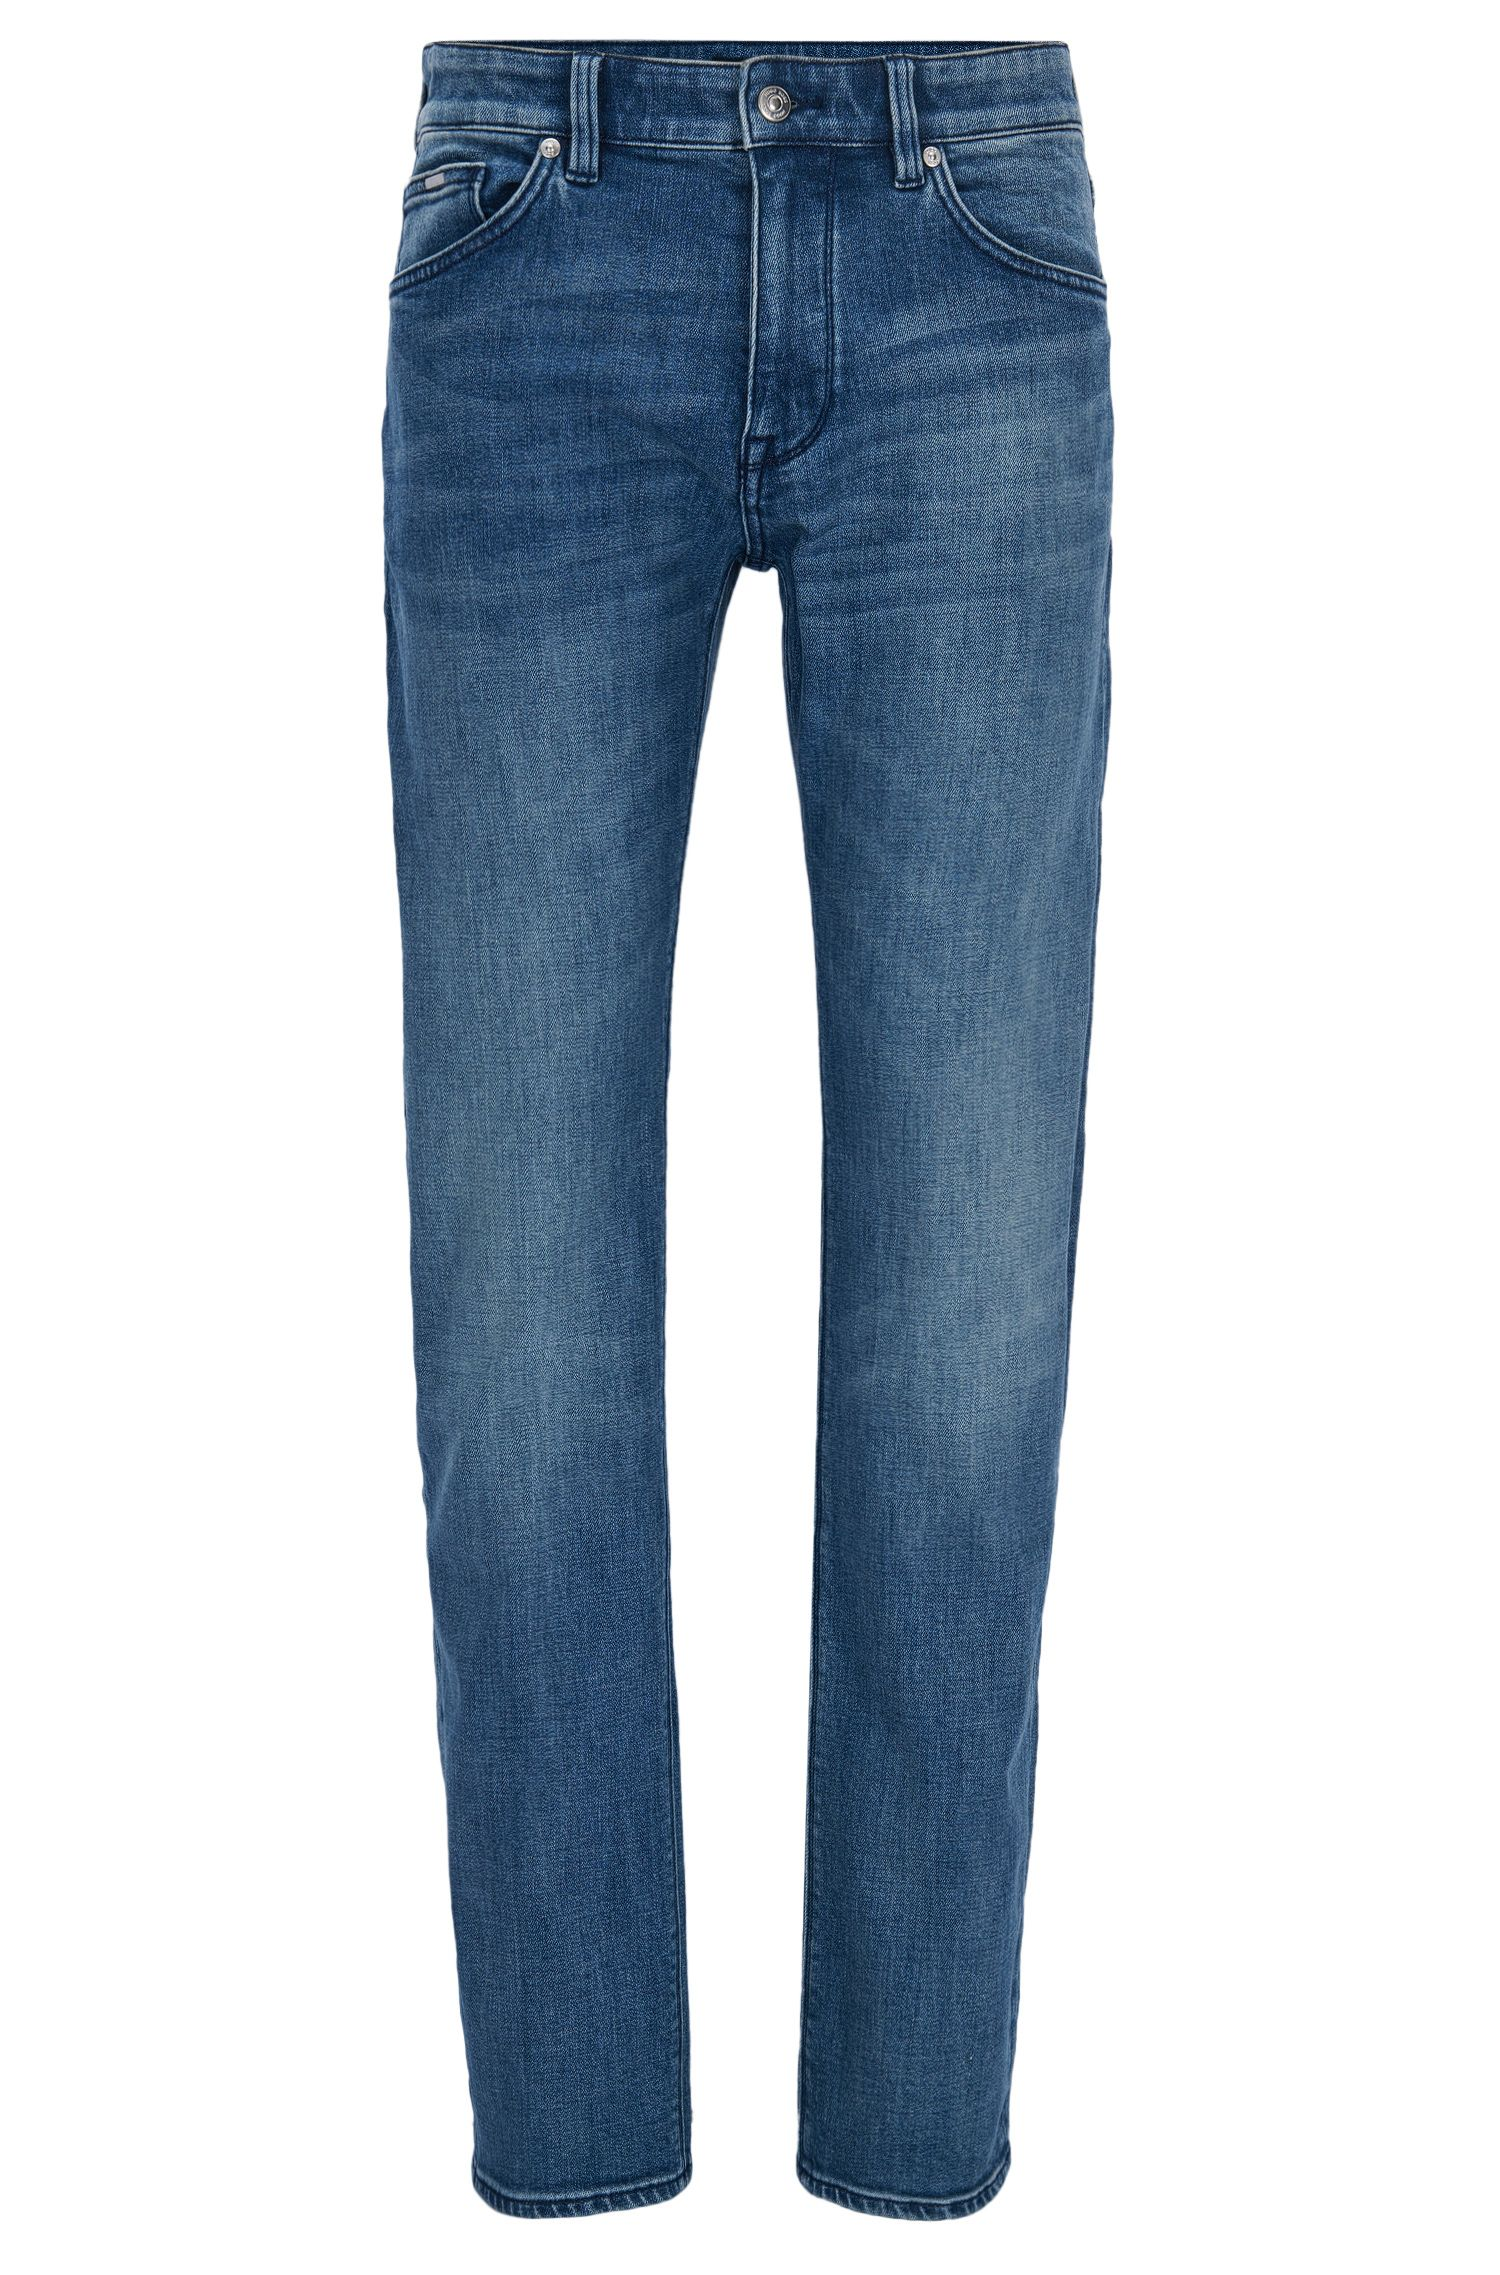 Regular-fit dark-blue jeans in distressed stretch denim